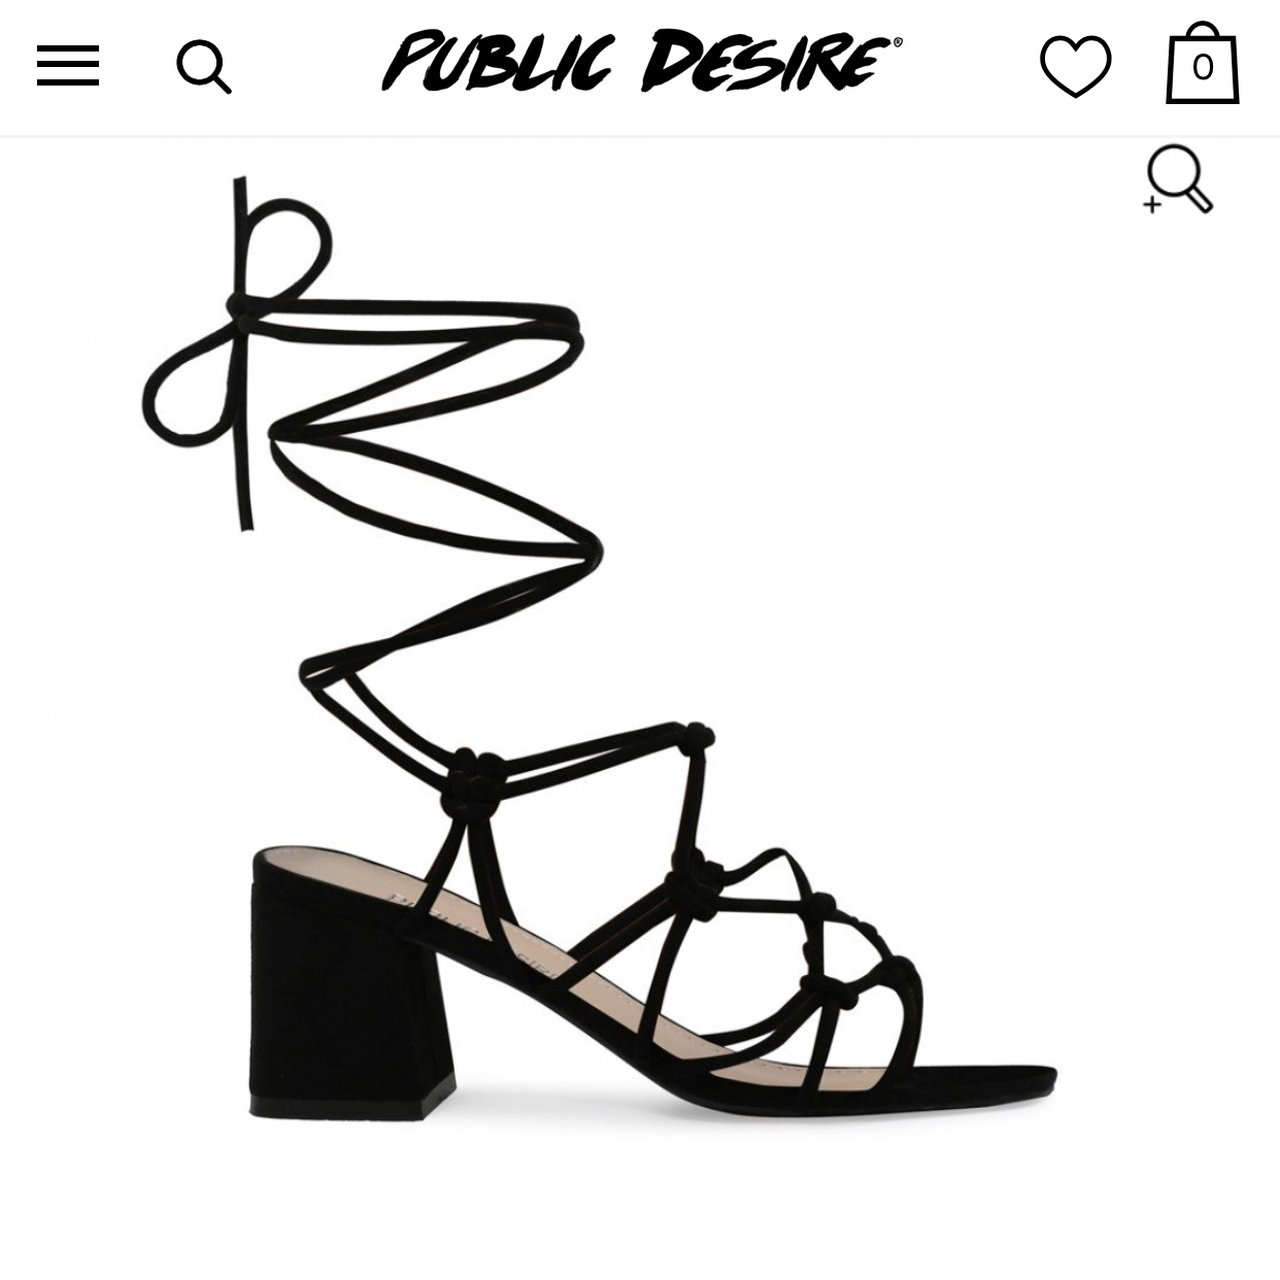 97c7a22057a PUBLIC DESIRE RRP £30.00 FREYA KNOTTED STRAPPY BLOCK HEELED - Depop